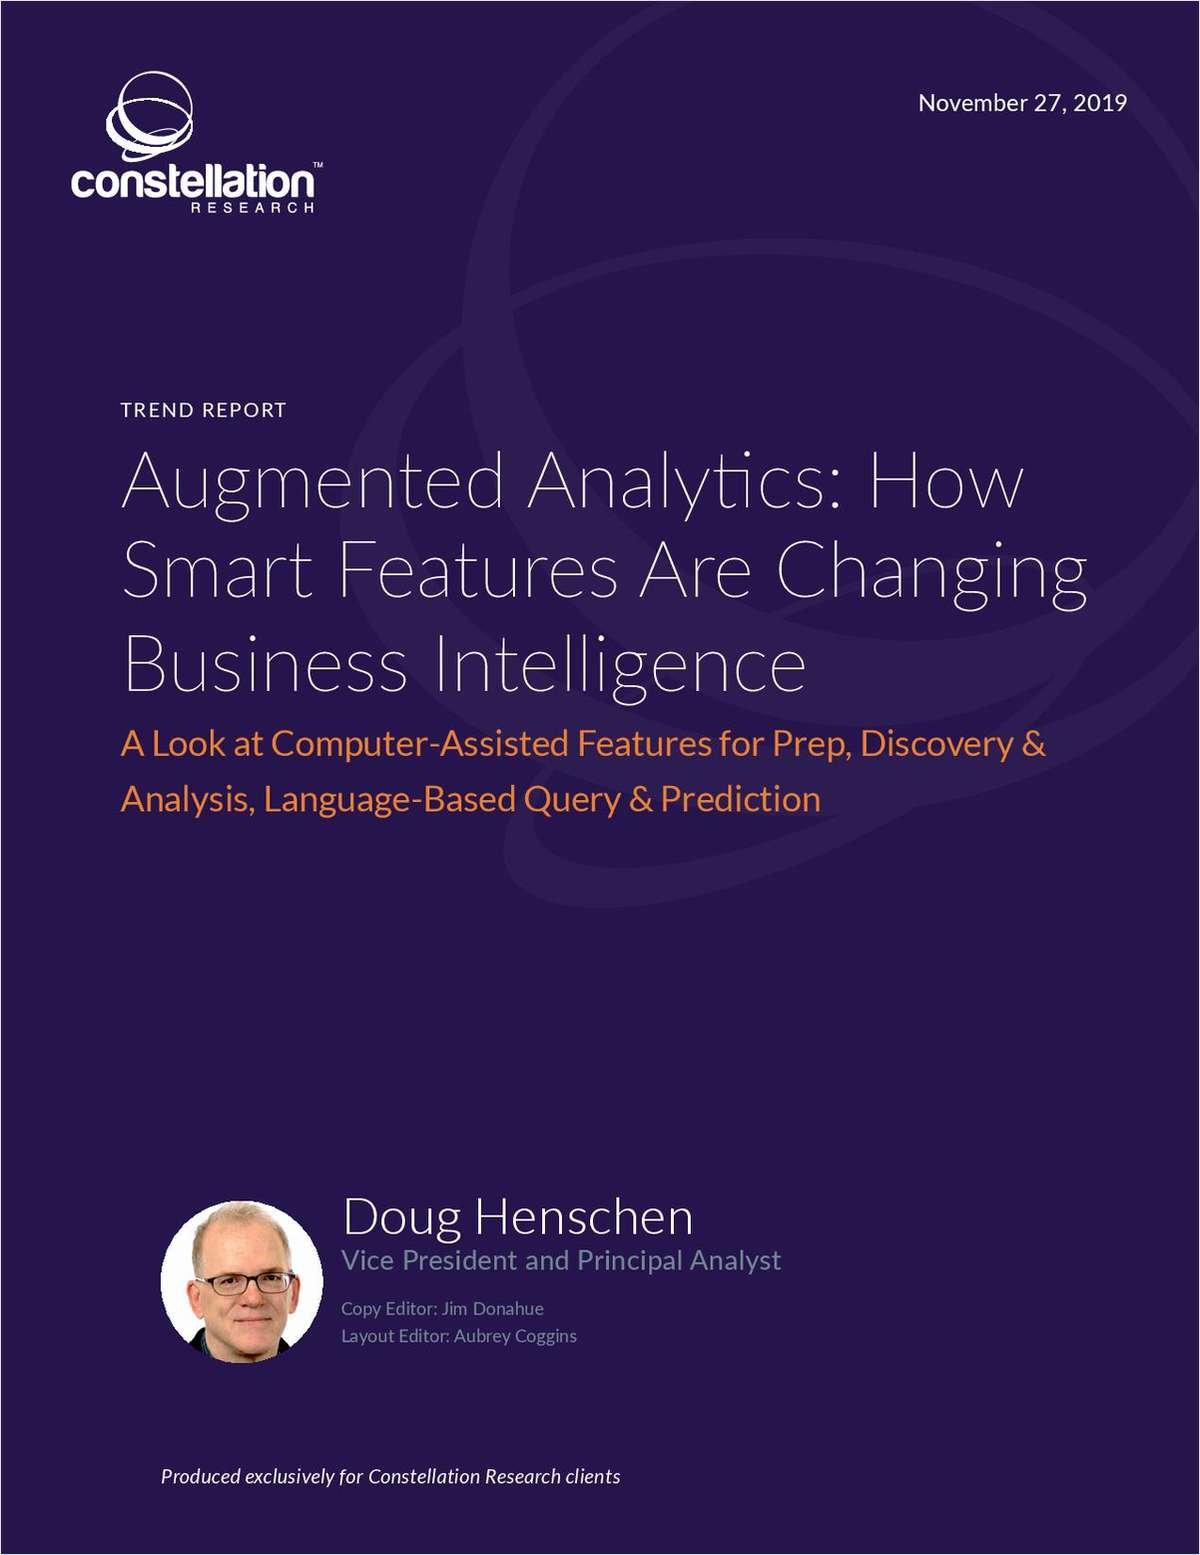 How Smart Features Are Changing Business Intelligence